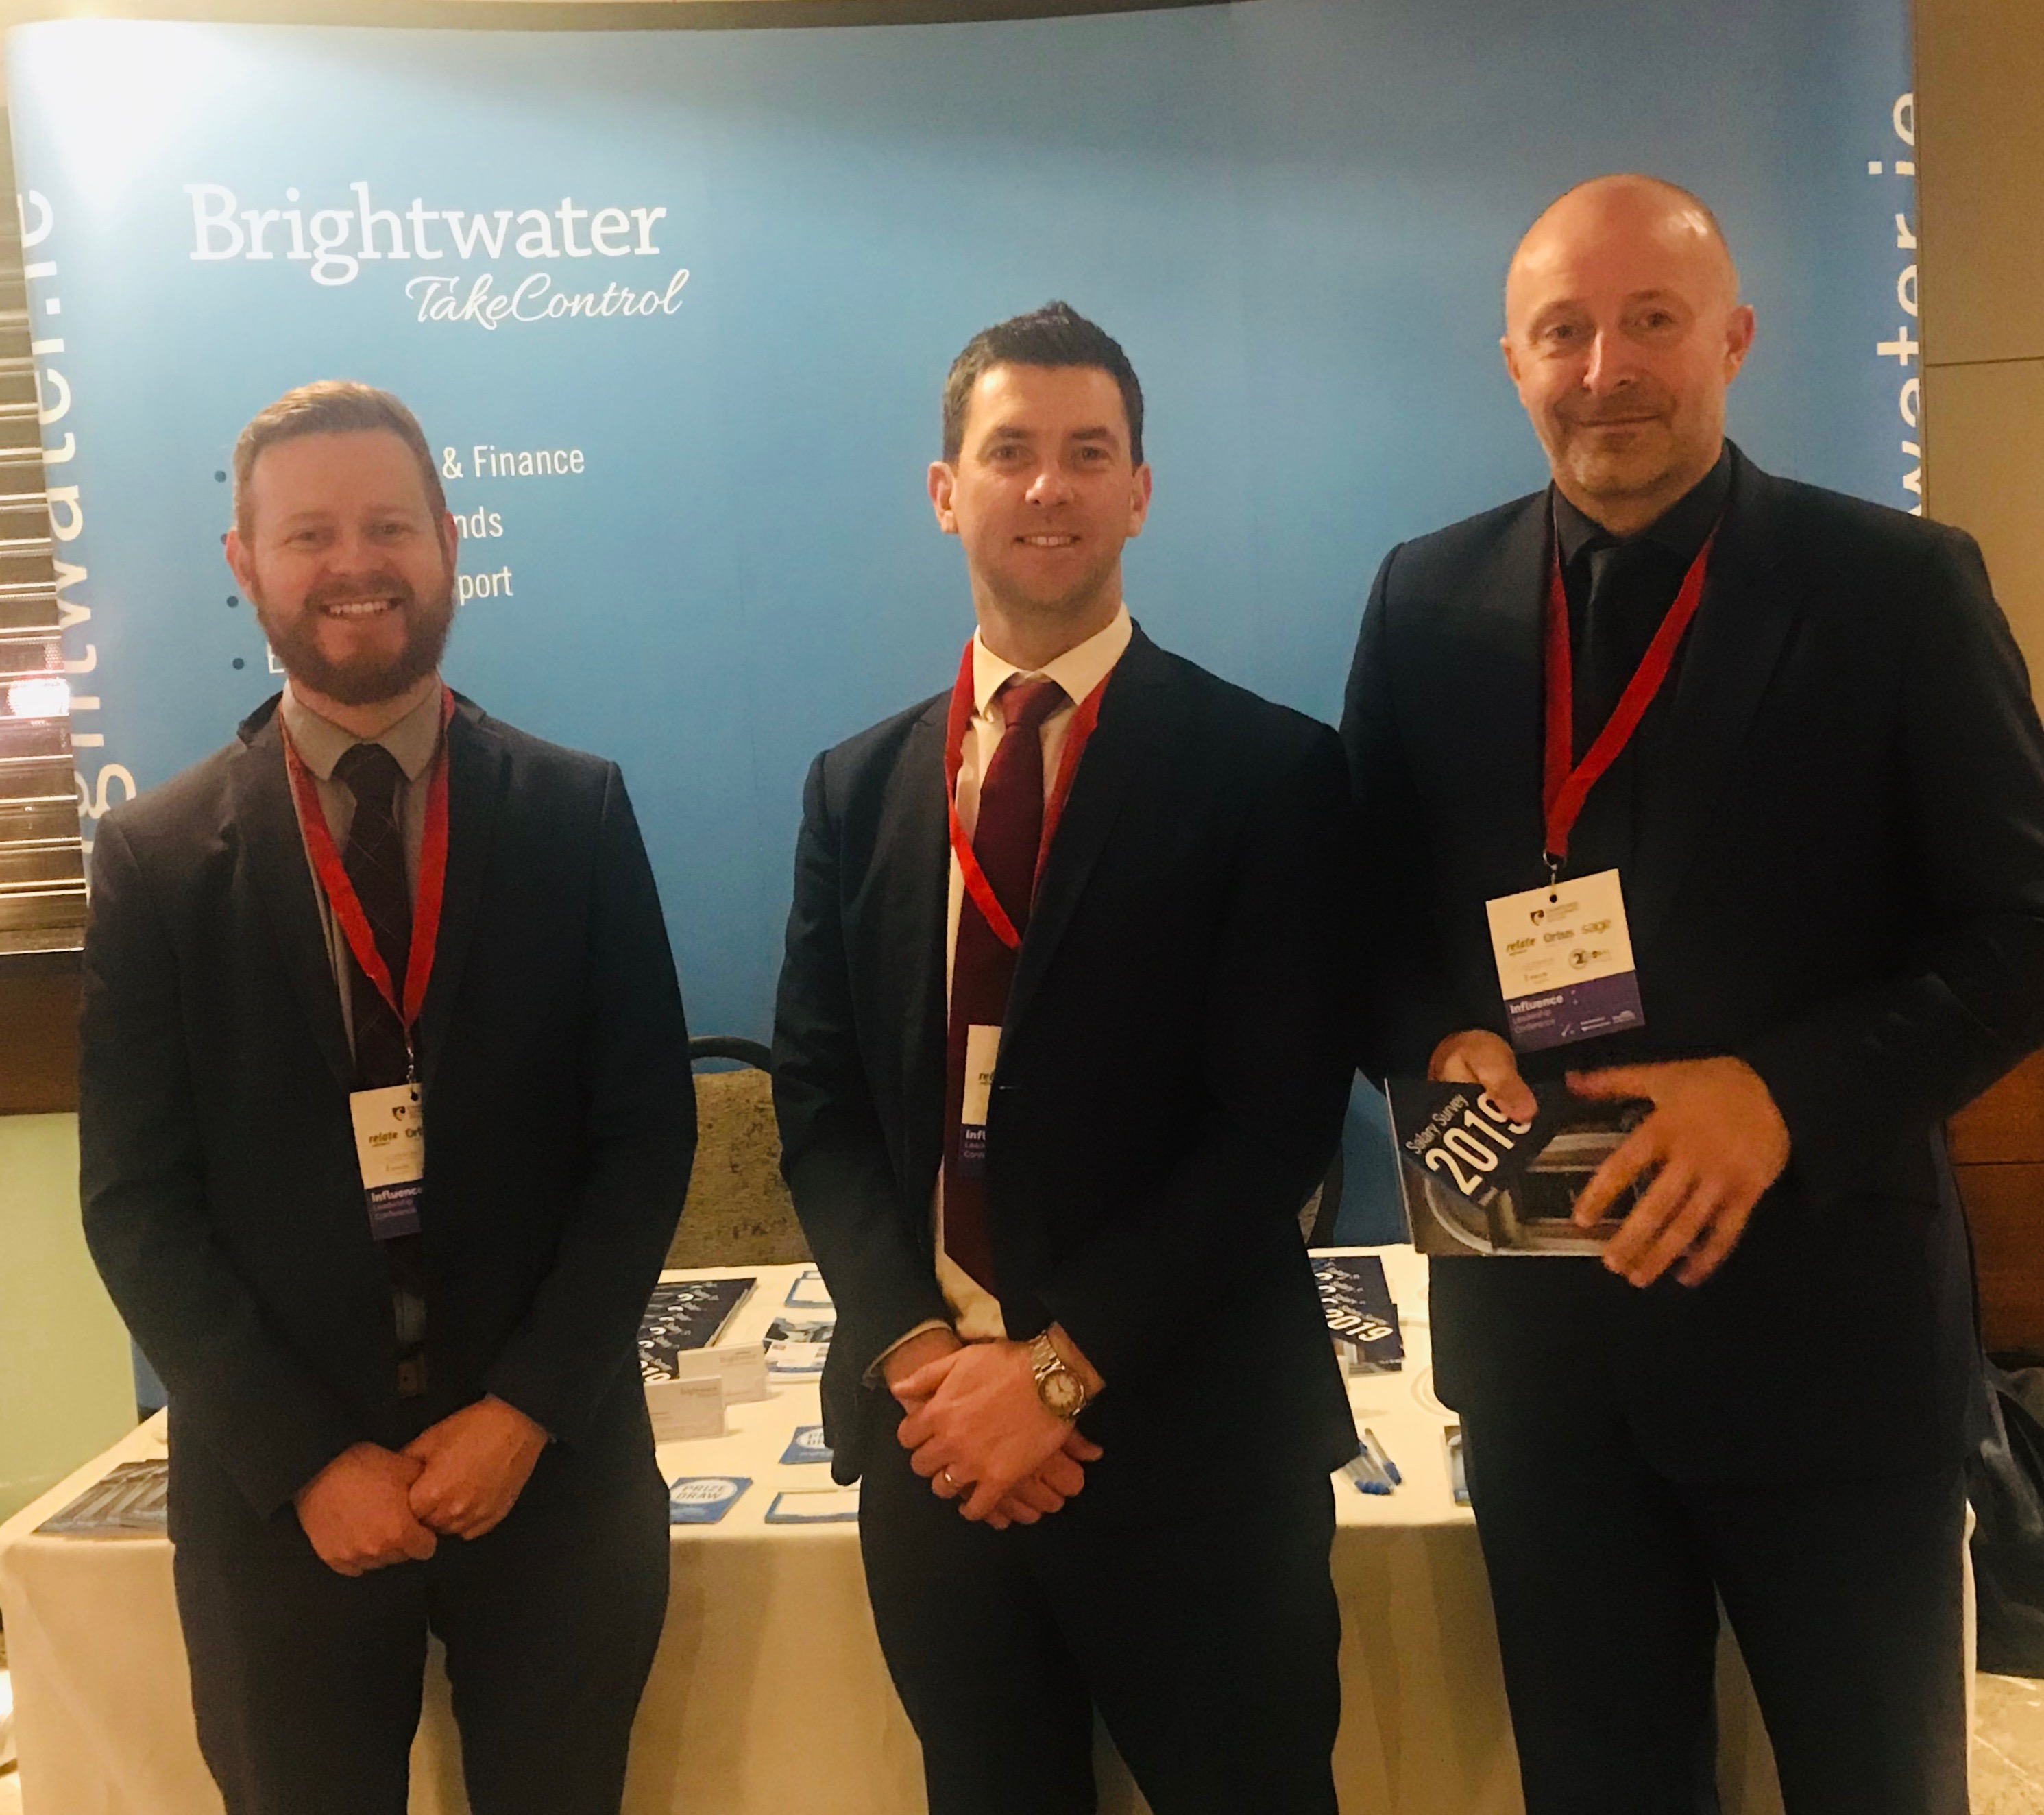 Brightwater Commercial Director Tom Wilkinson with Brightwater consultants Simon Lehane and Simon Morris